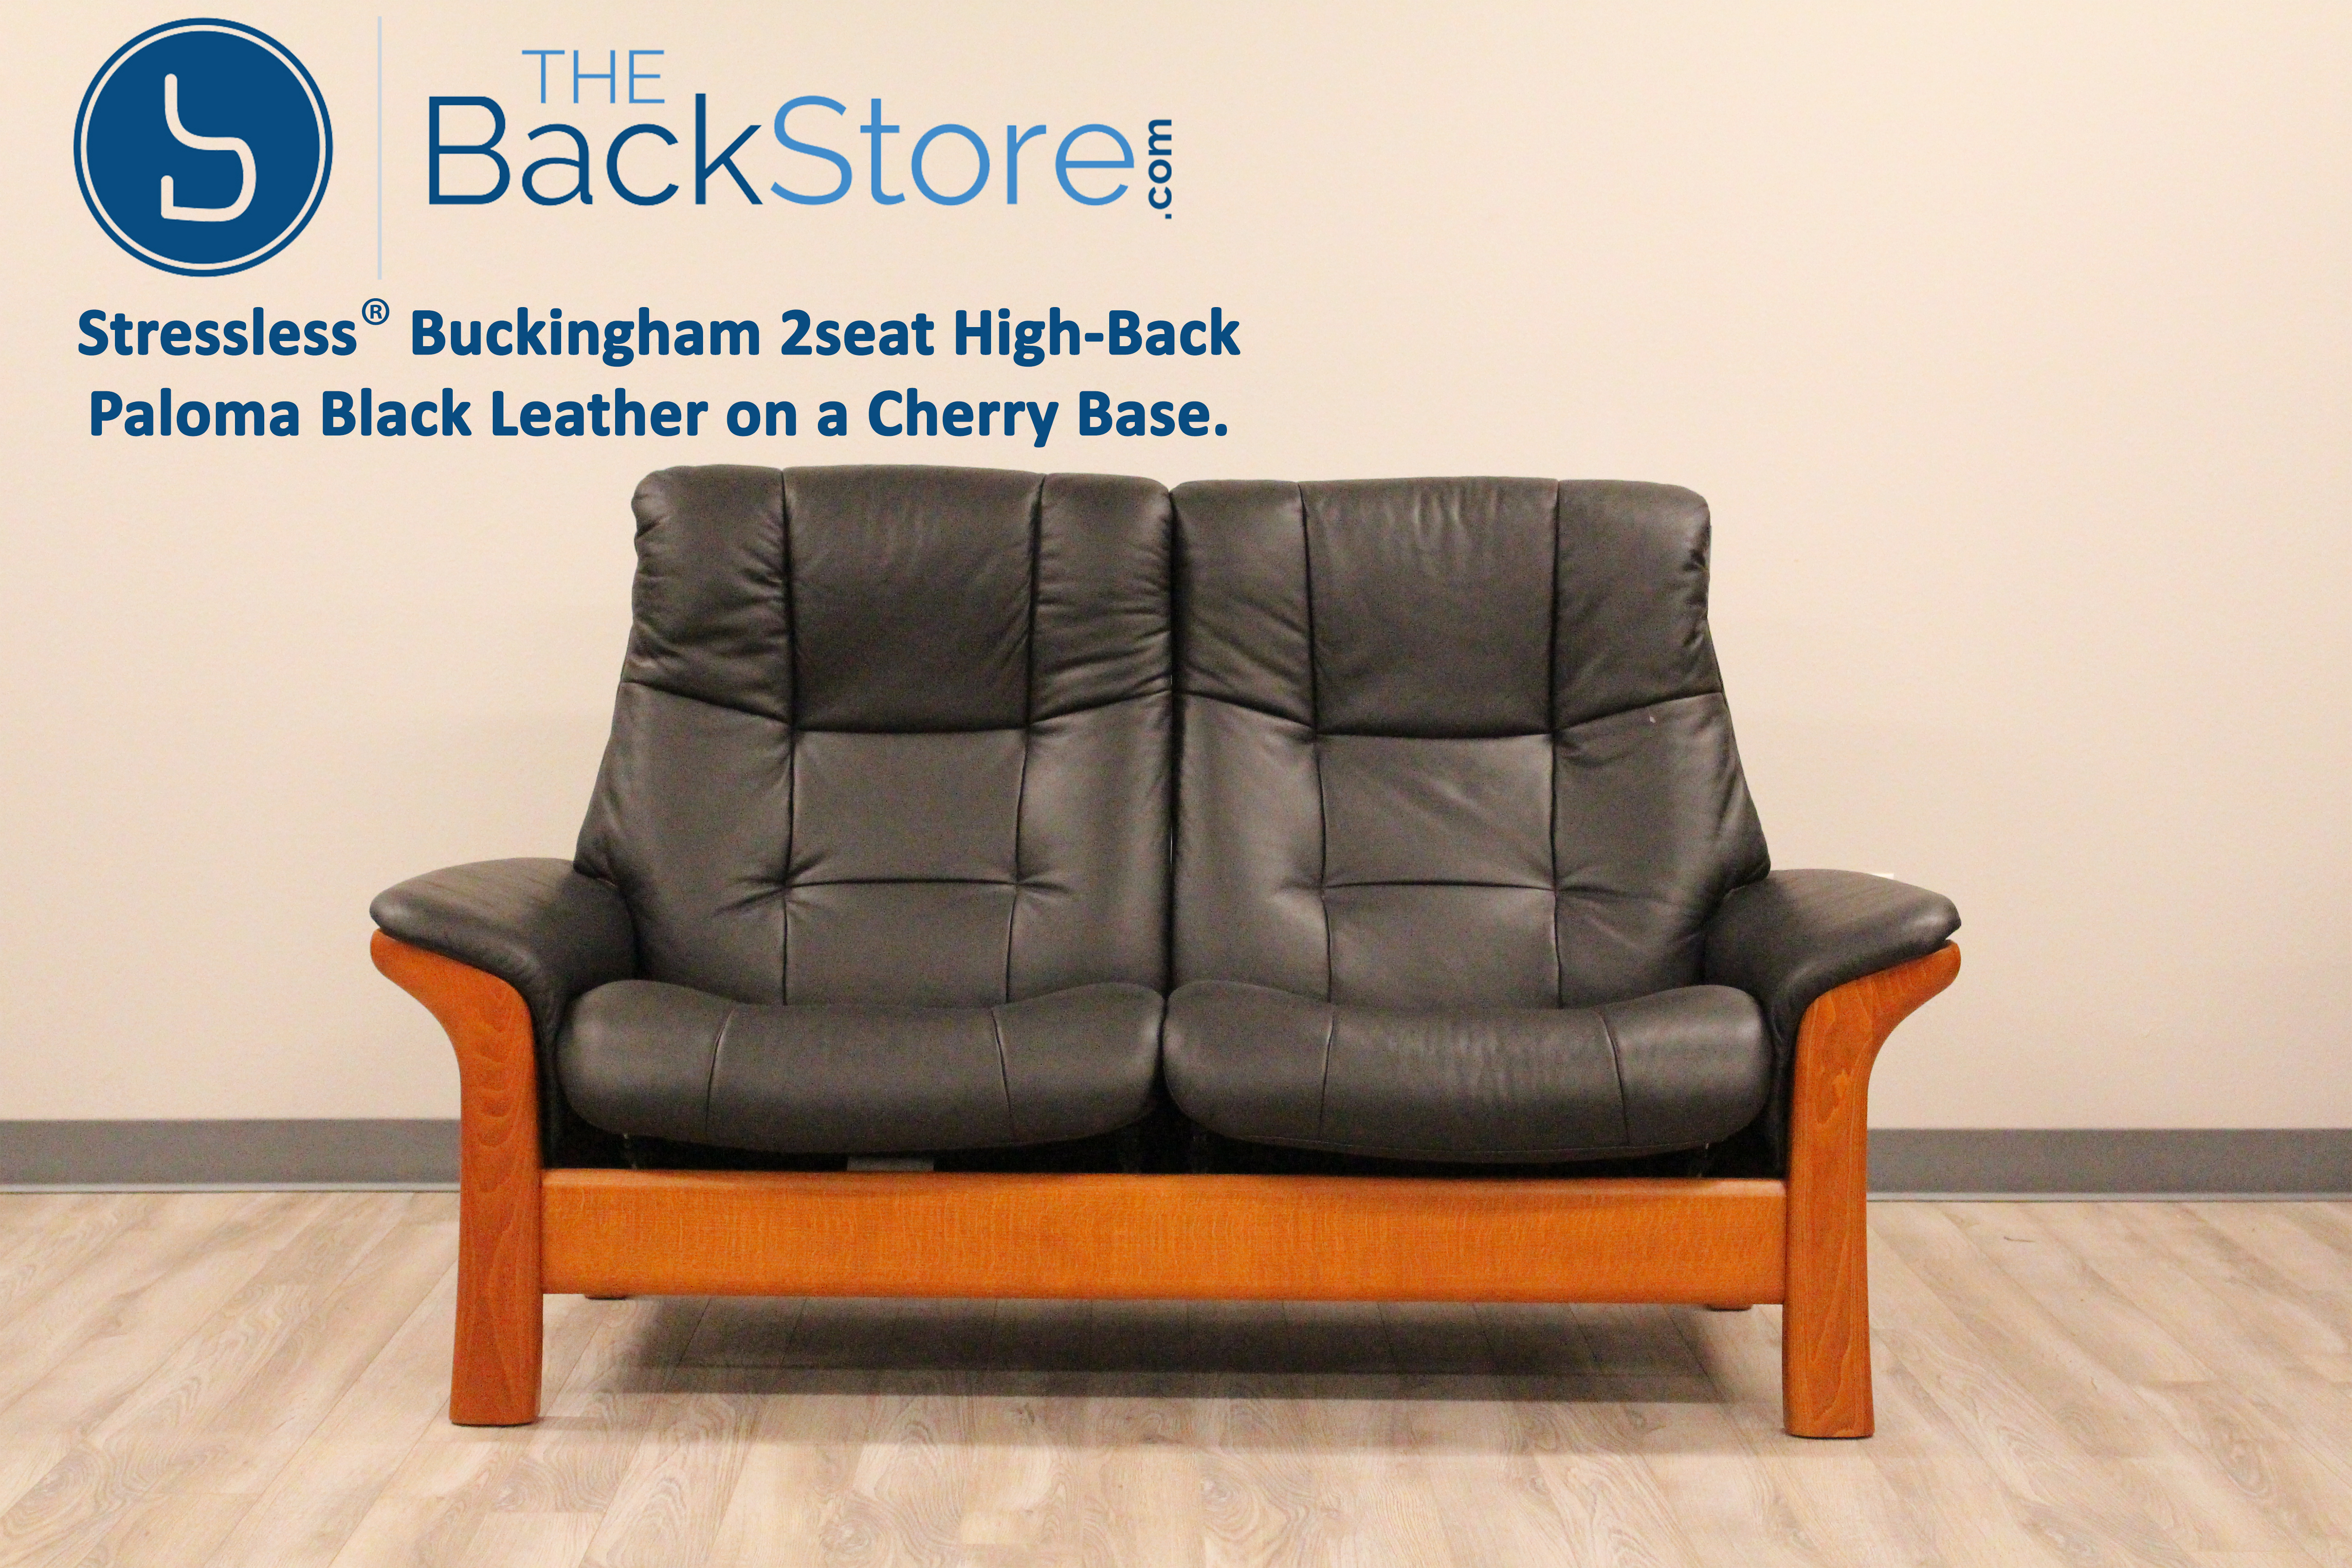 Stressless buckingham 2 seat loveseat high back sofa for Paloma leather sofa